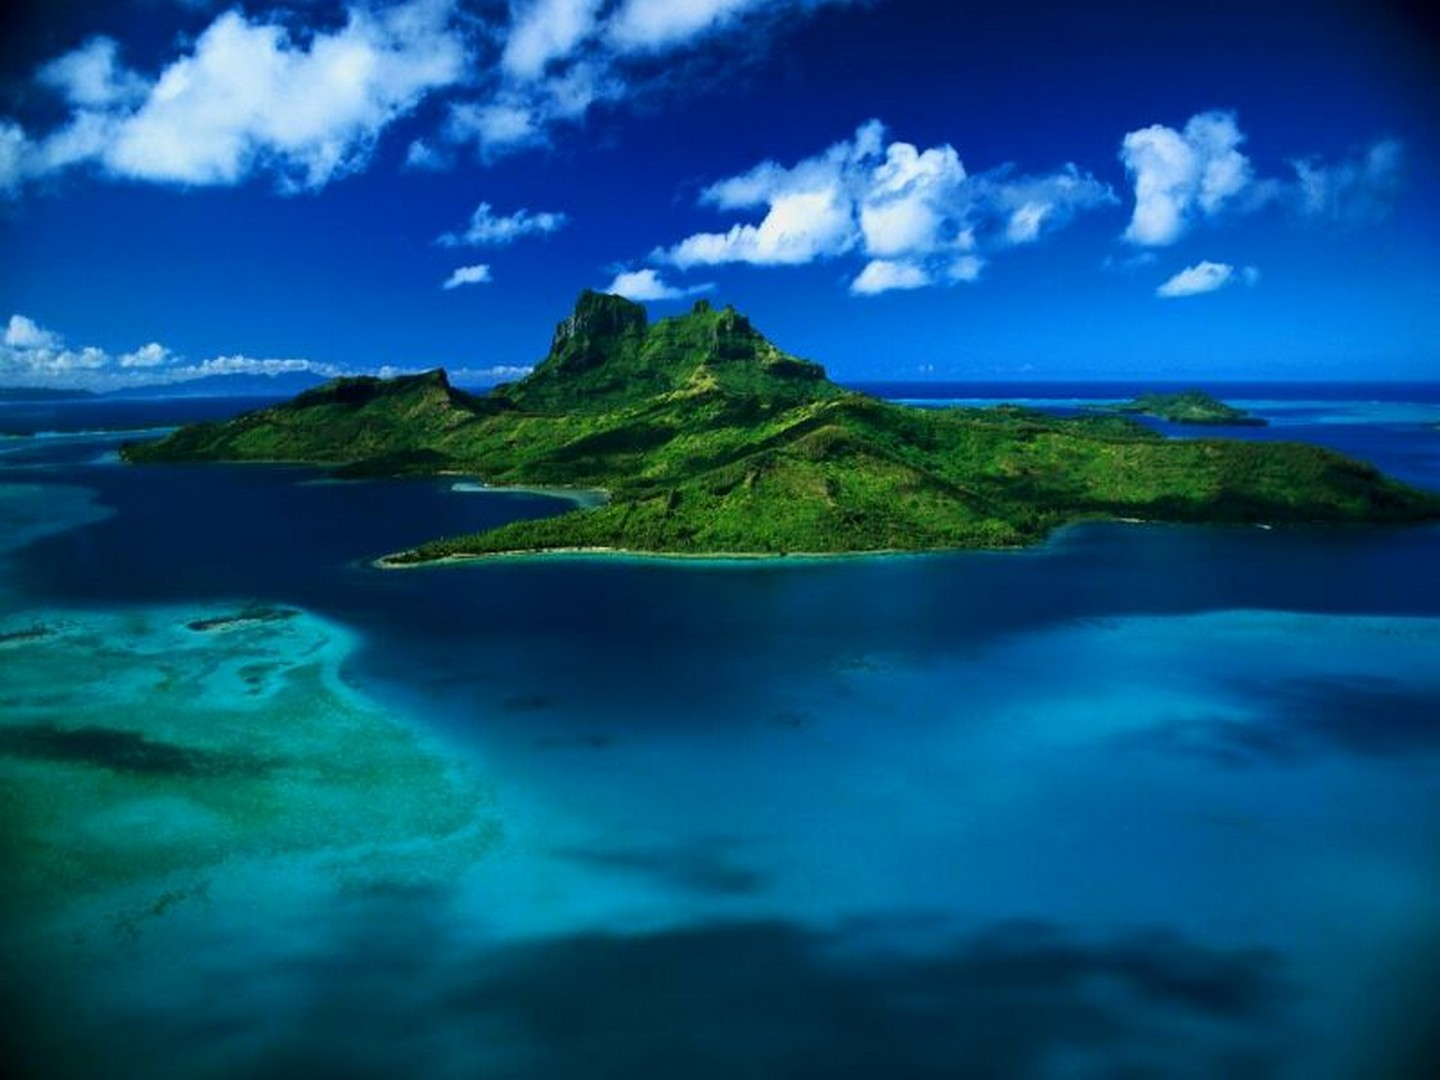 Download Sea Wallpaper wallpaper Deep Blue Water 1440x1080